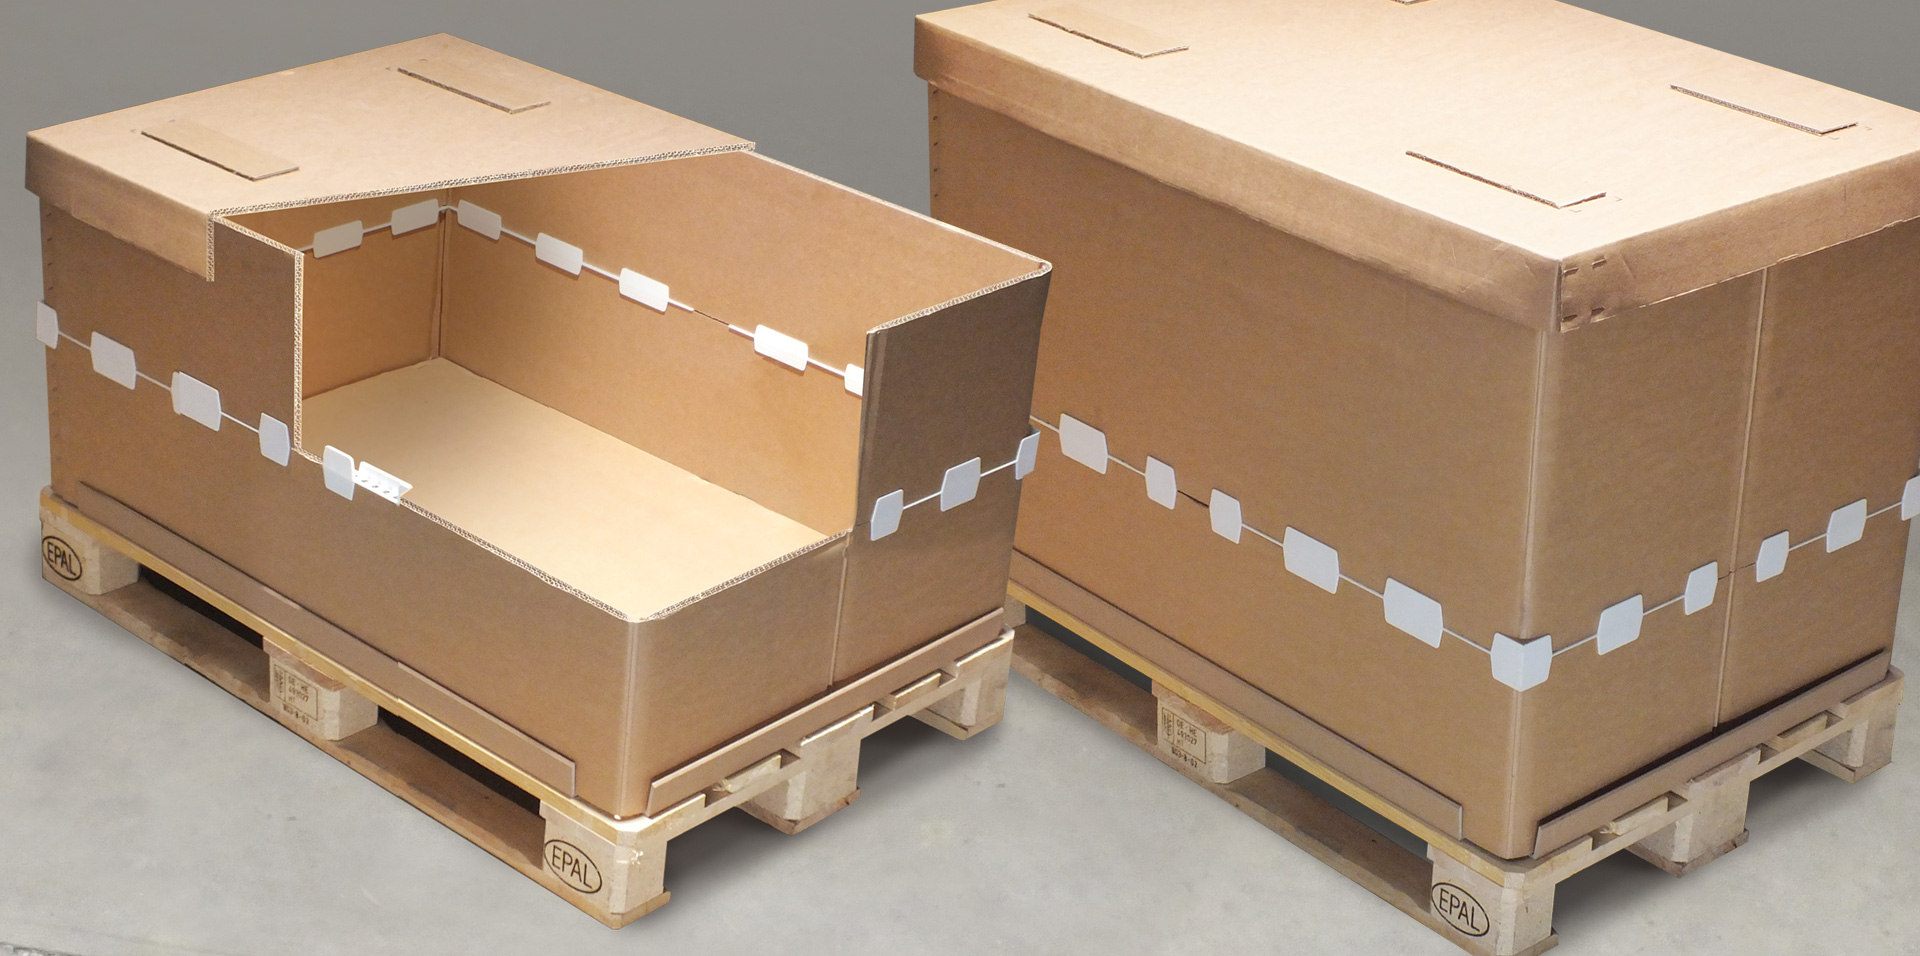 sw-paratus-header-flex-box-system-verpackung-flexible-hoehe-1920x956_web.jpg